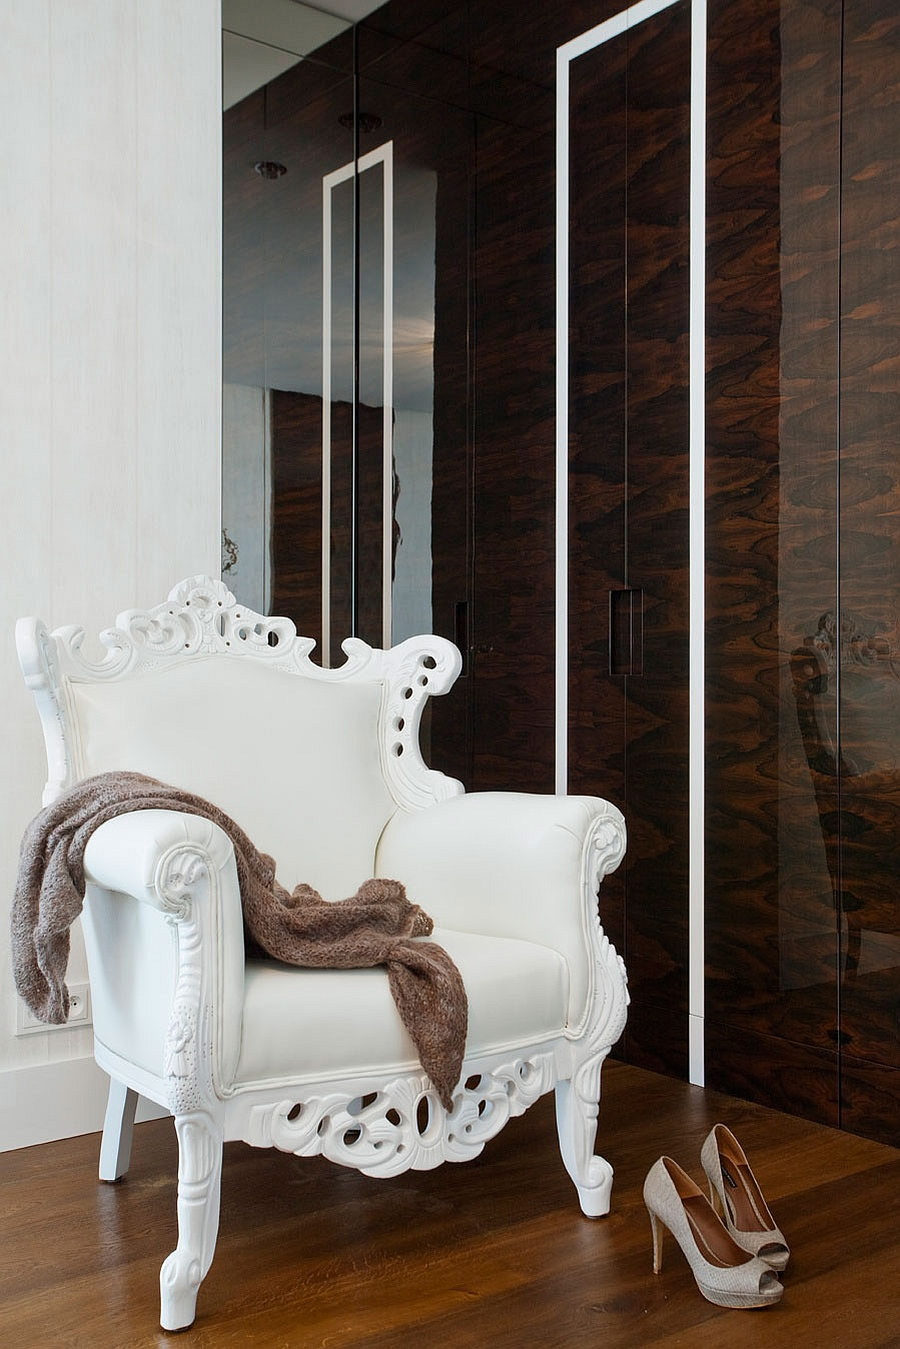 Classical Decor Addition To The Modern Space Wrapped in Contemporary Clothes